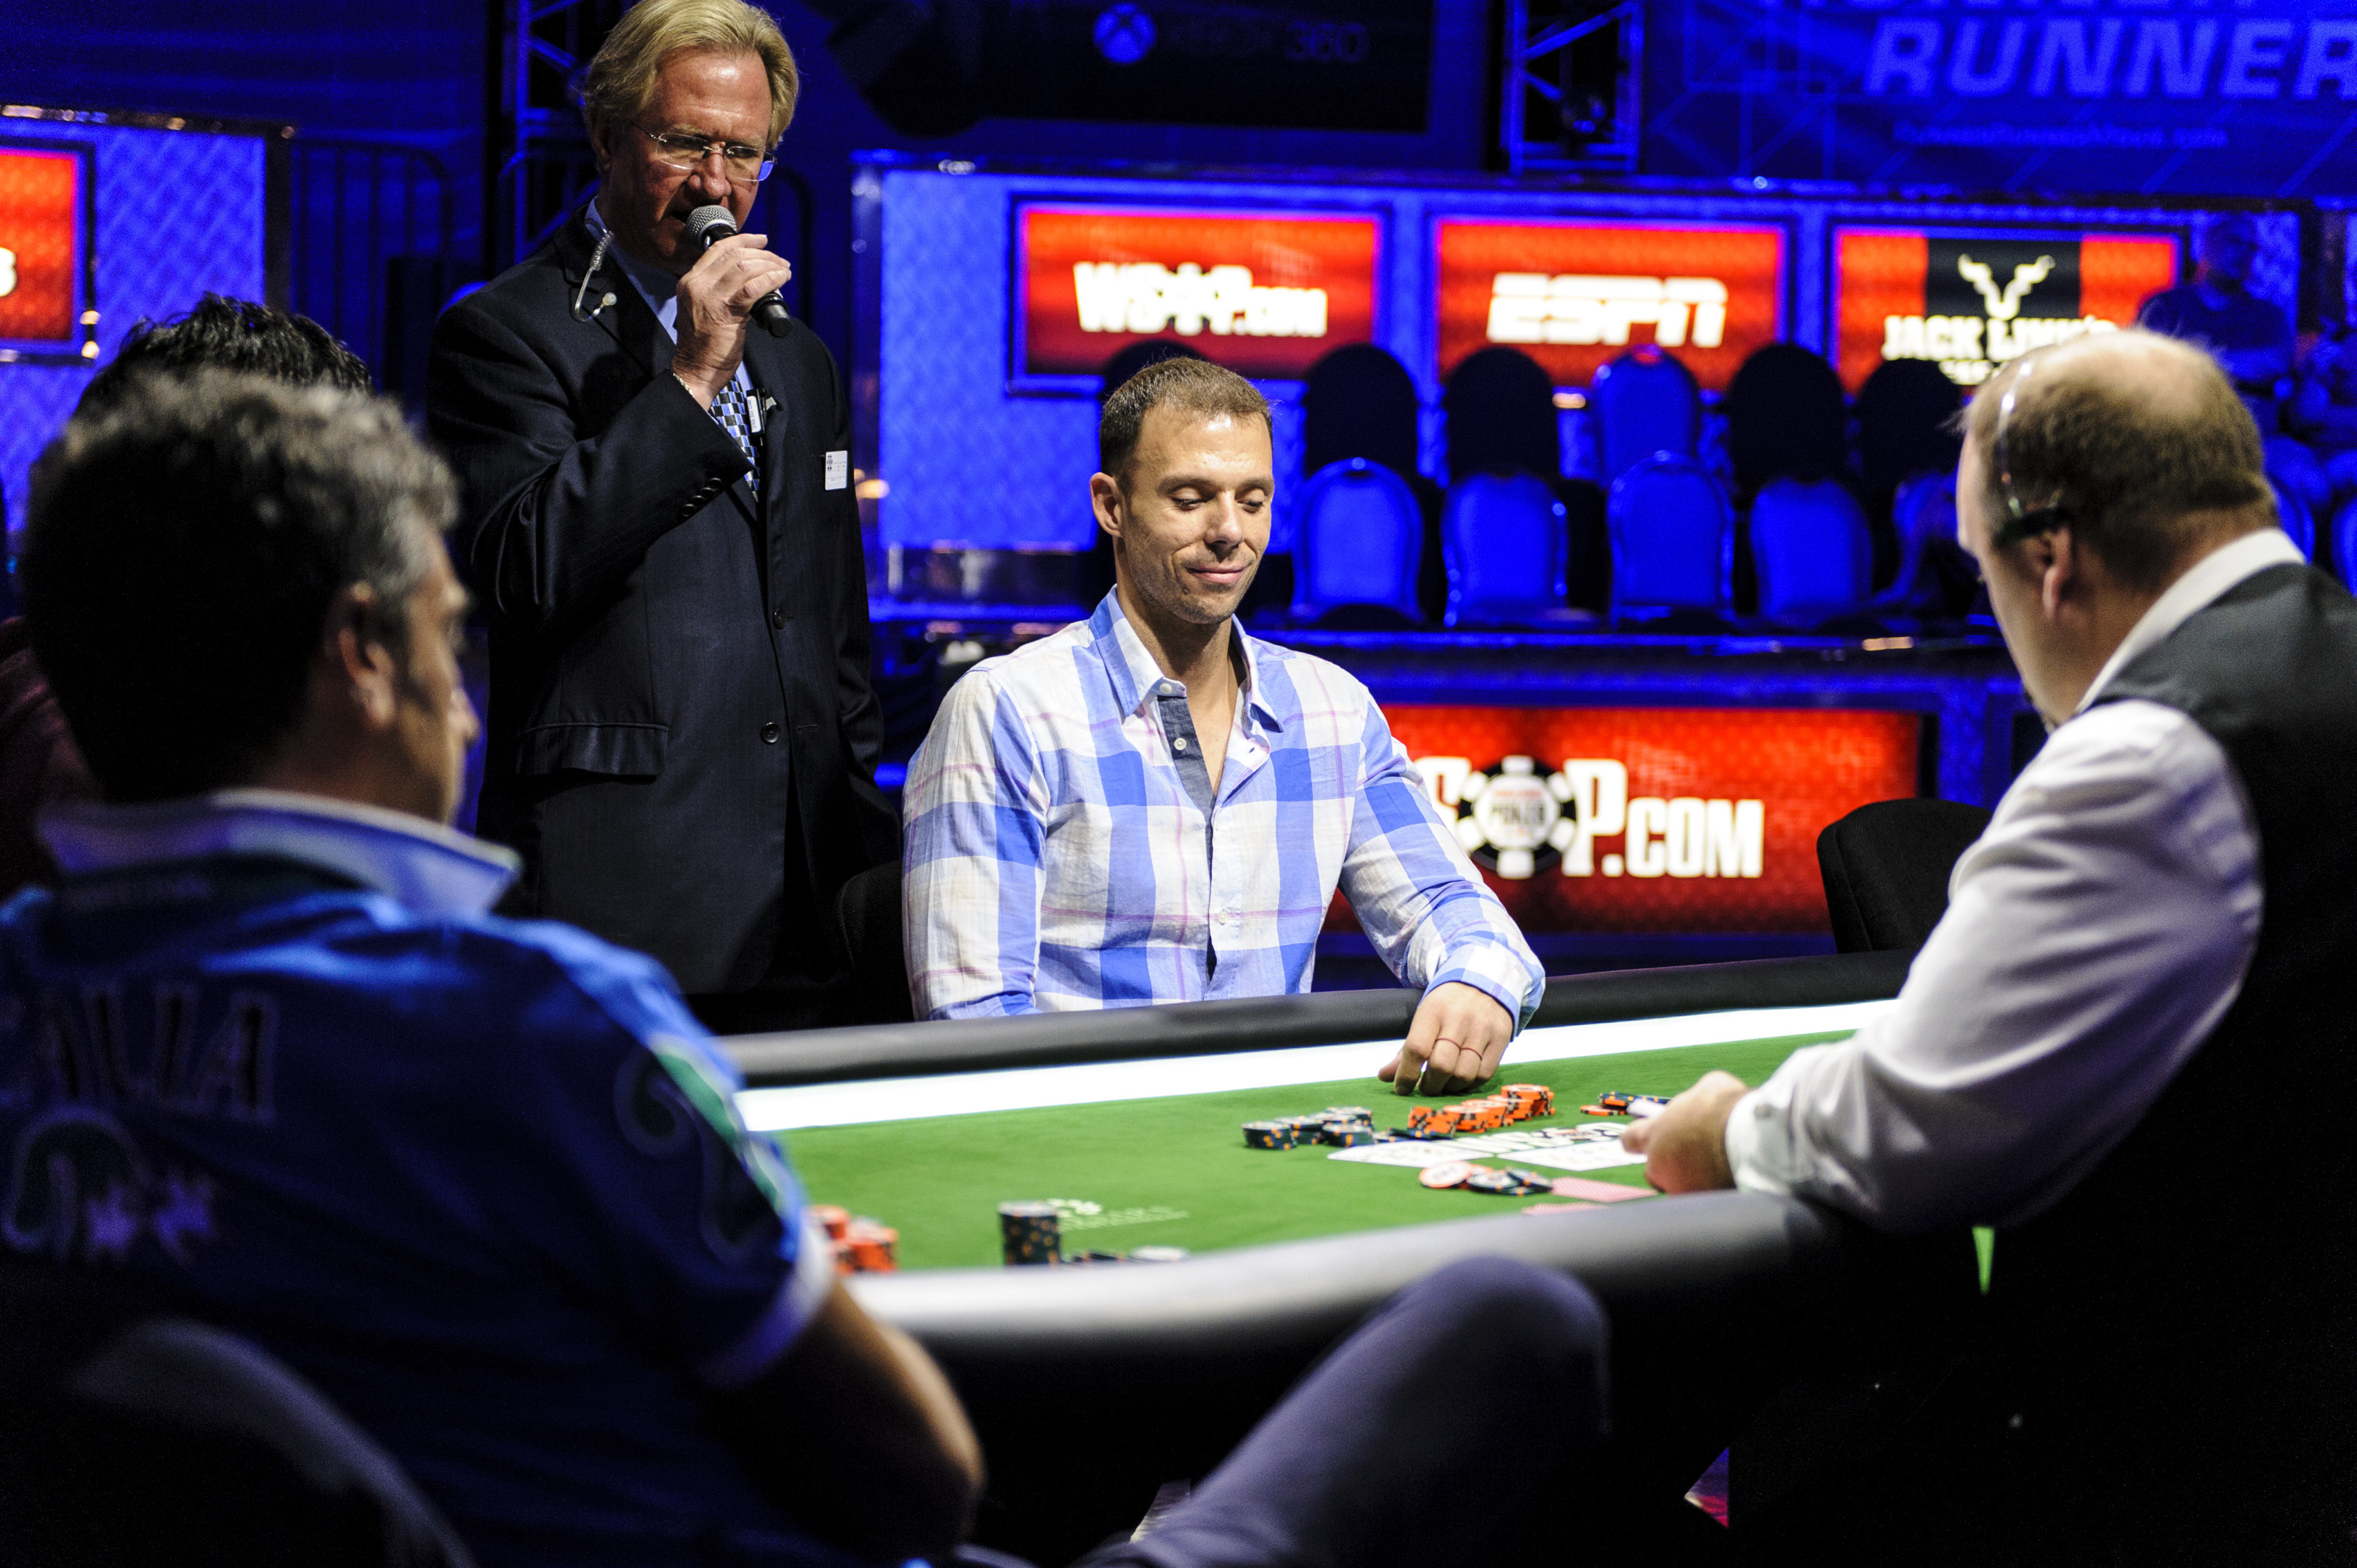 Matt Berkey smiles seeing the flop as he is all in vs Antonio Buonanno